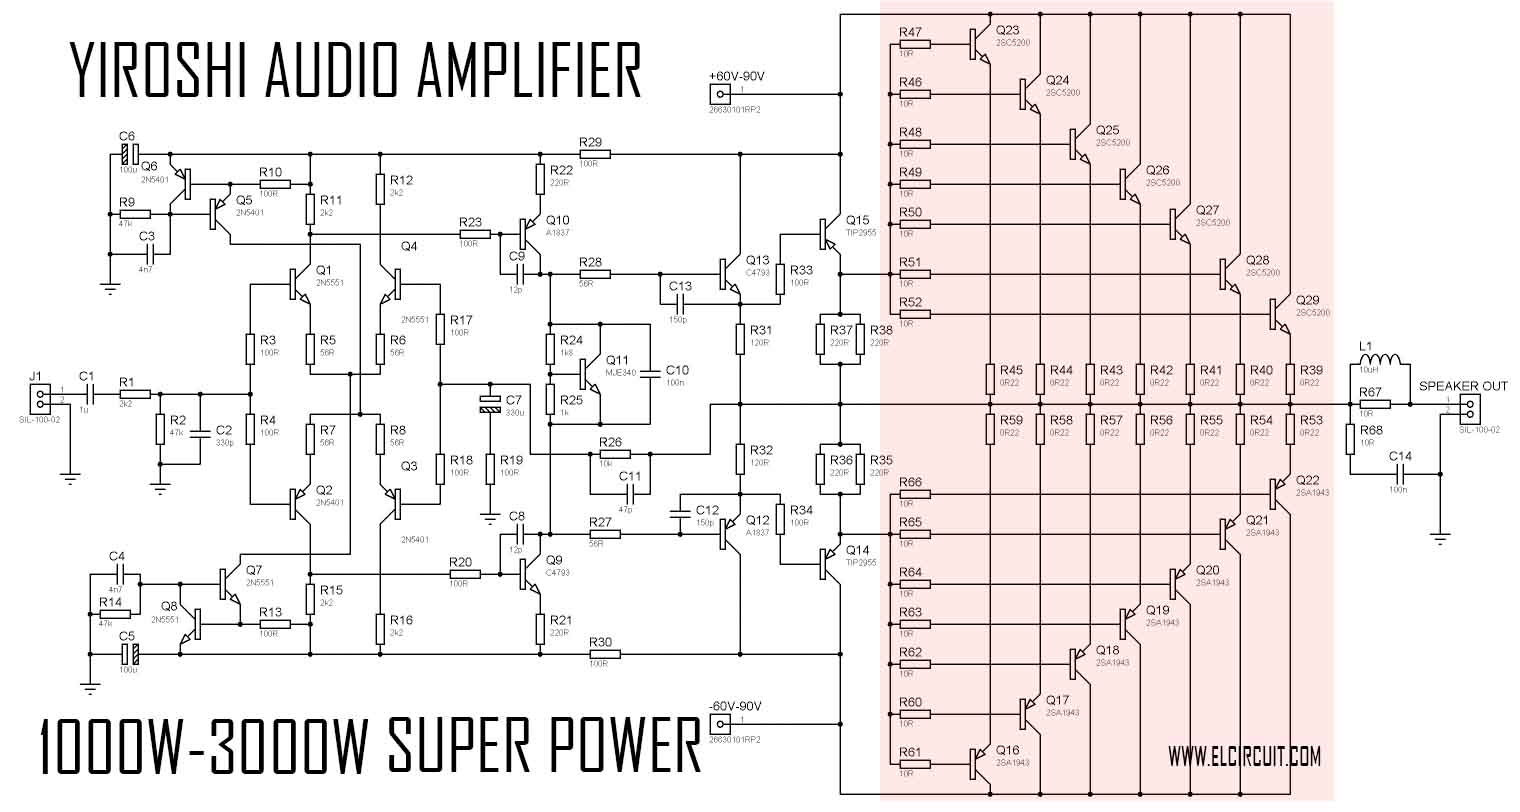 5000 watts amplifier schematic diagrams wrg 6760  5000 watts amplifier circuit diagrams  5000 watts amplifier circuit diagrams